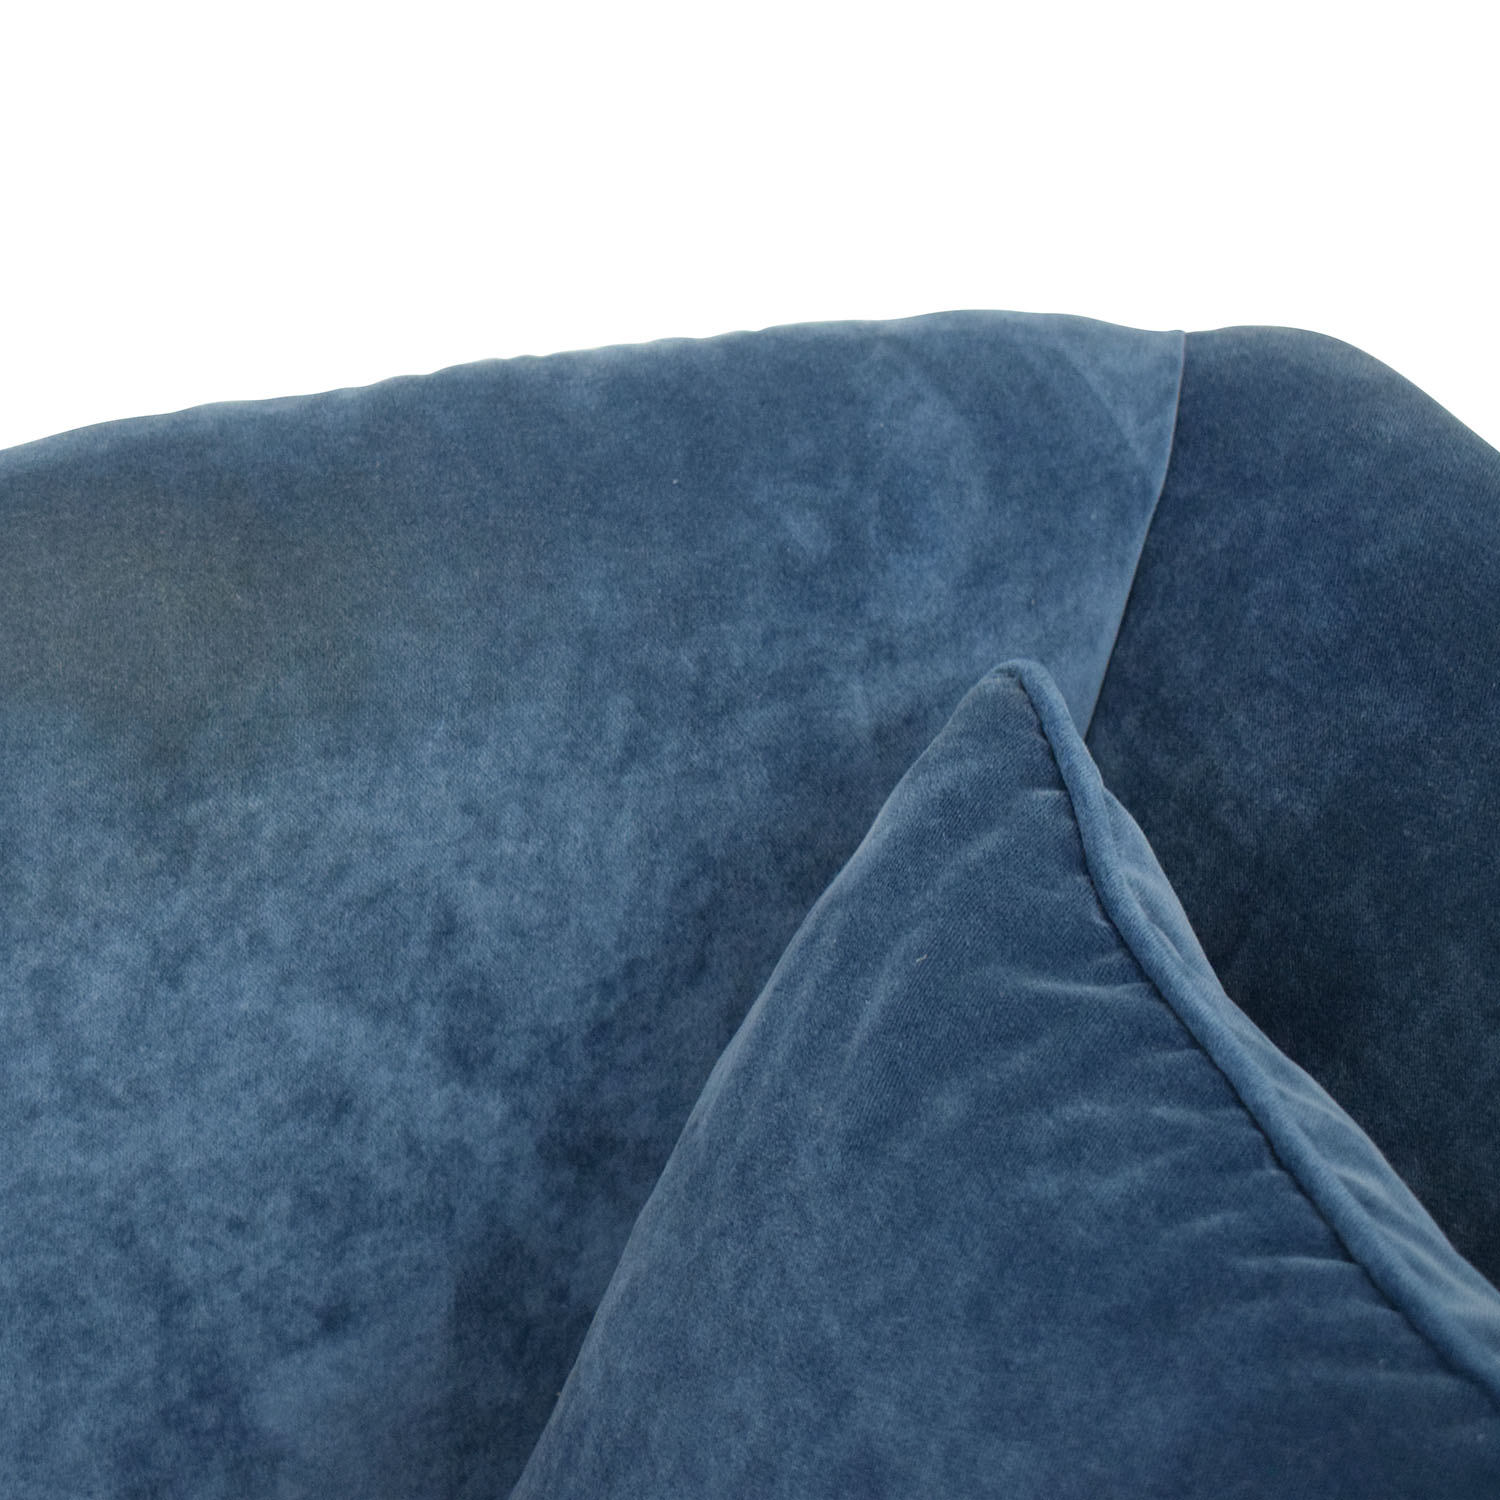 shop HomeGoods Blue Velvet Divan HomeGoods Sofas